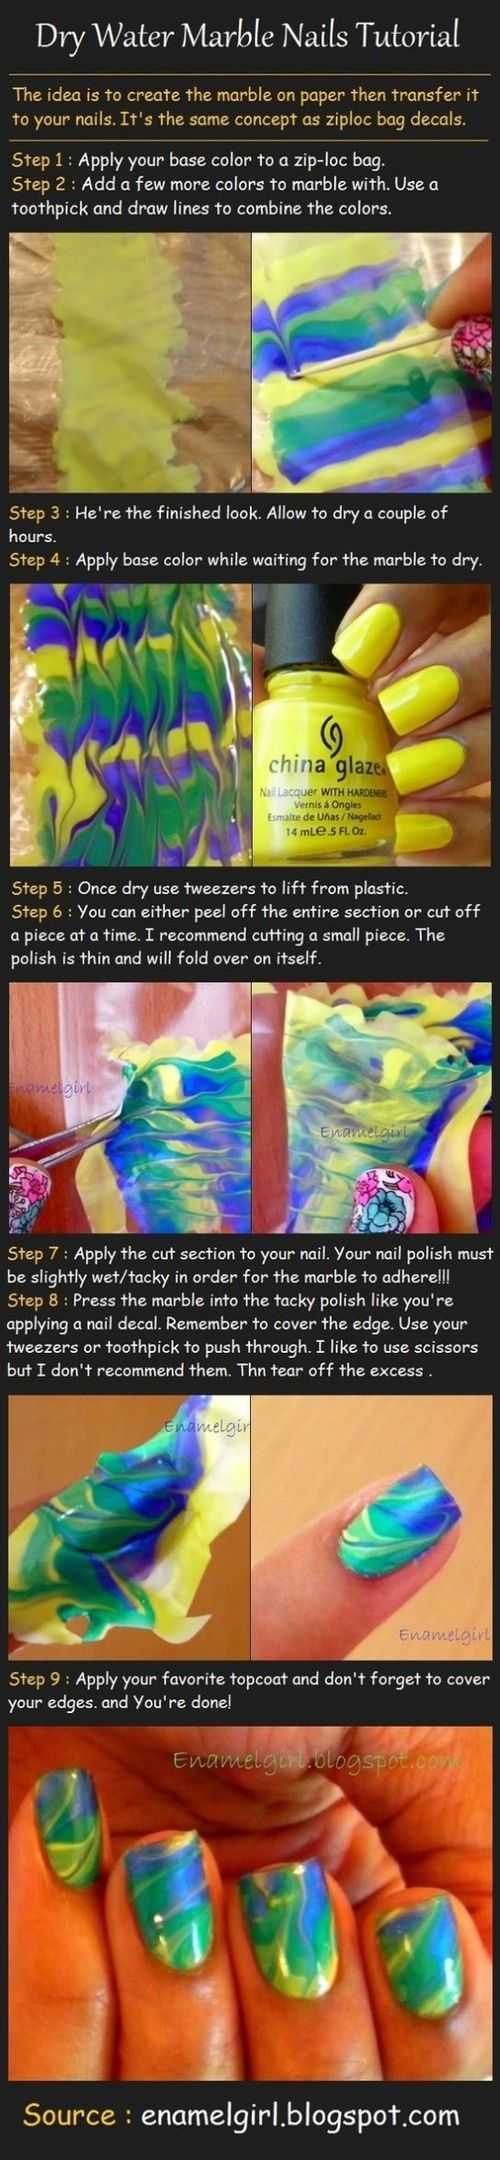 Diy dry water marble nail design do it yourself fashion tips diy diy dry water marble nail design do it yourself fashion tips diy fashion projects on imgfave solutioingenieria Image collections